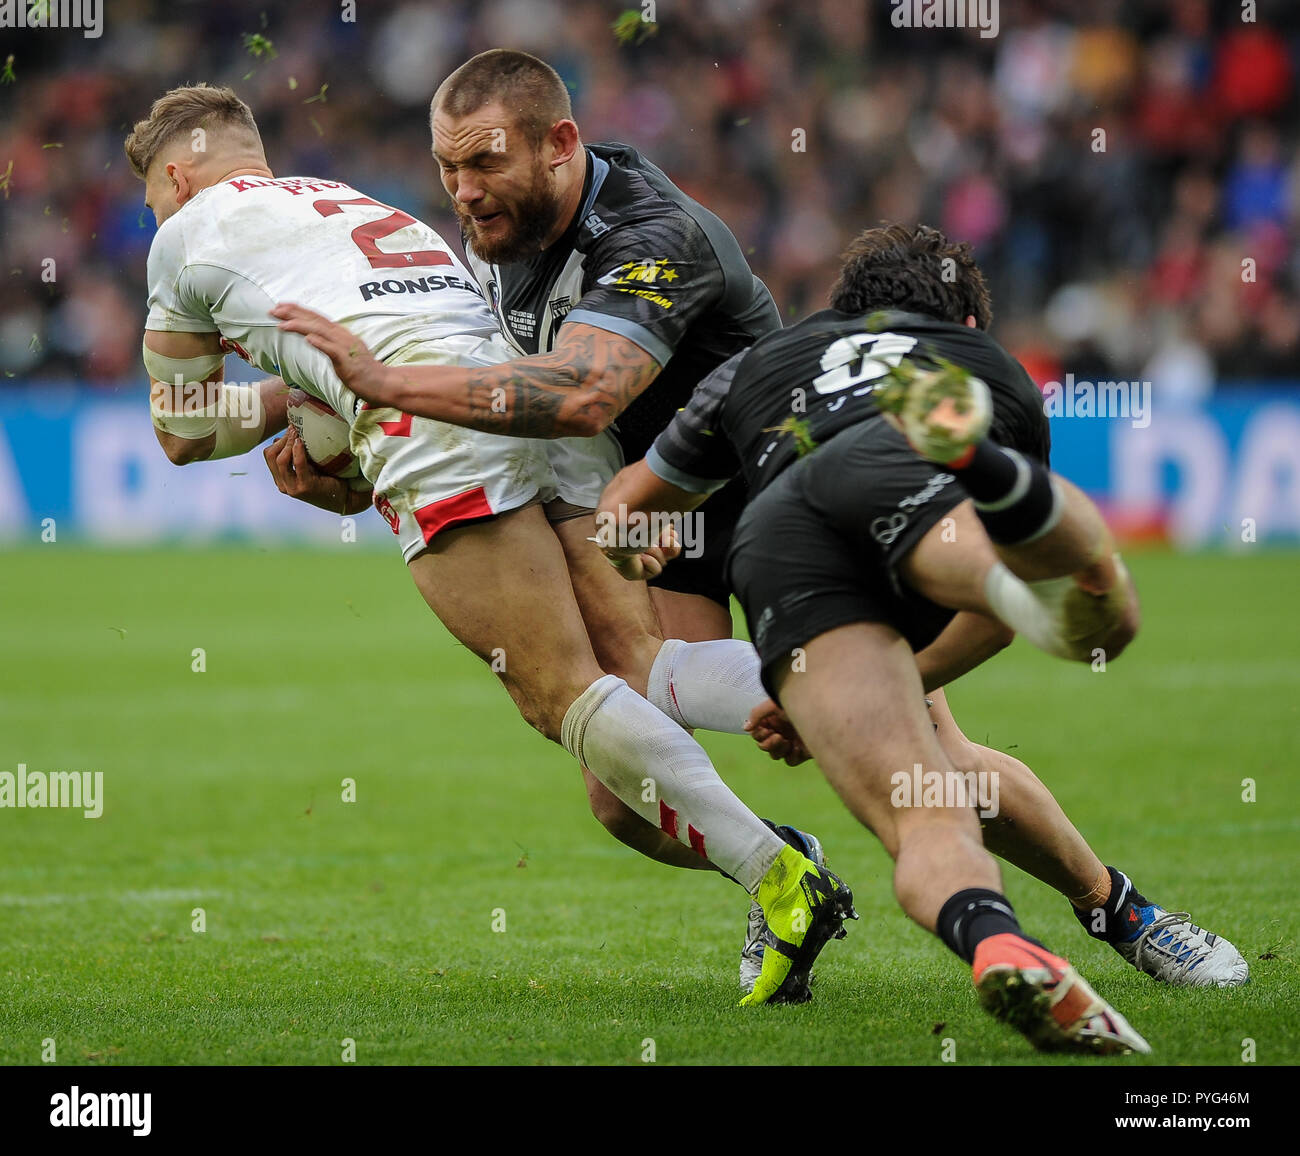 Hull, UK, 27 10 2018. 27 October 2018. KCOM Stadium, Hull, England; Rugby League Dacia International, England vs New Zealand; Tommy Makinson drives the ball away from his own line.  Photo:Dean Williams Credit: Dean Williams/Alamy Live News Stock Photo